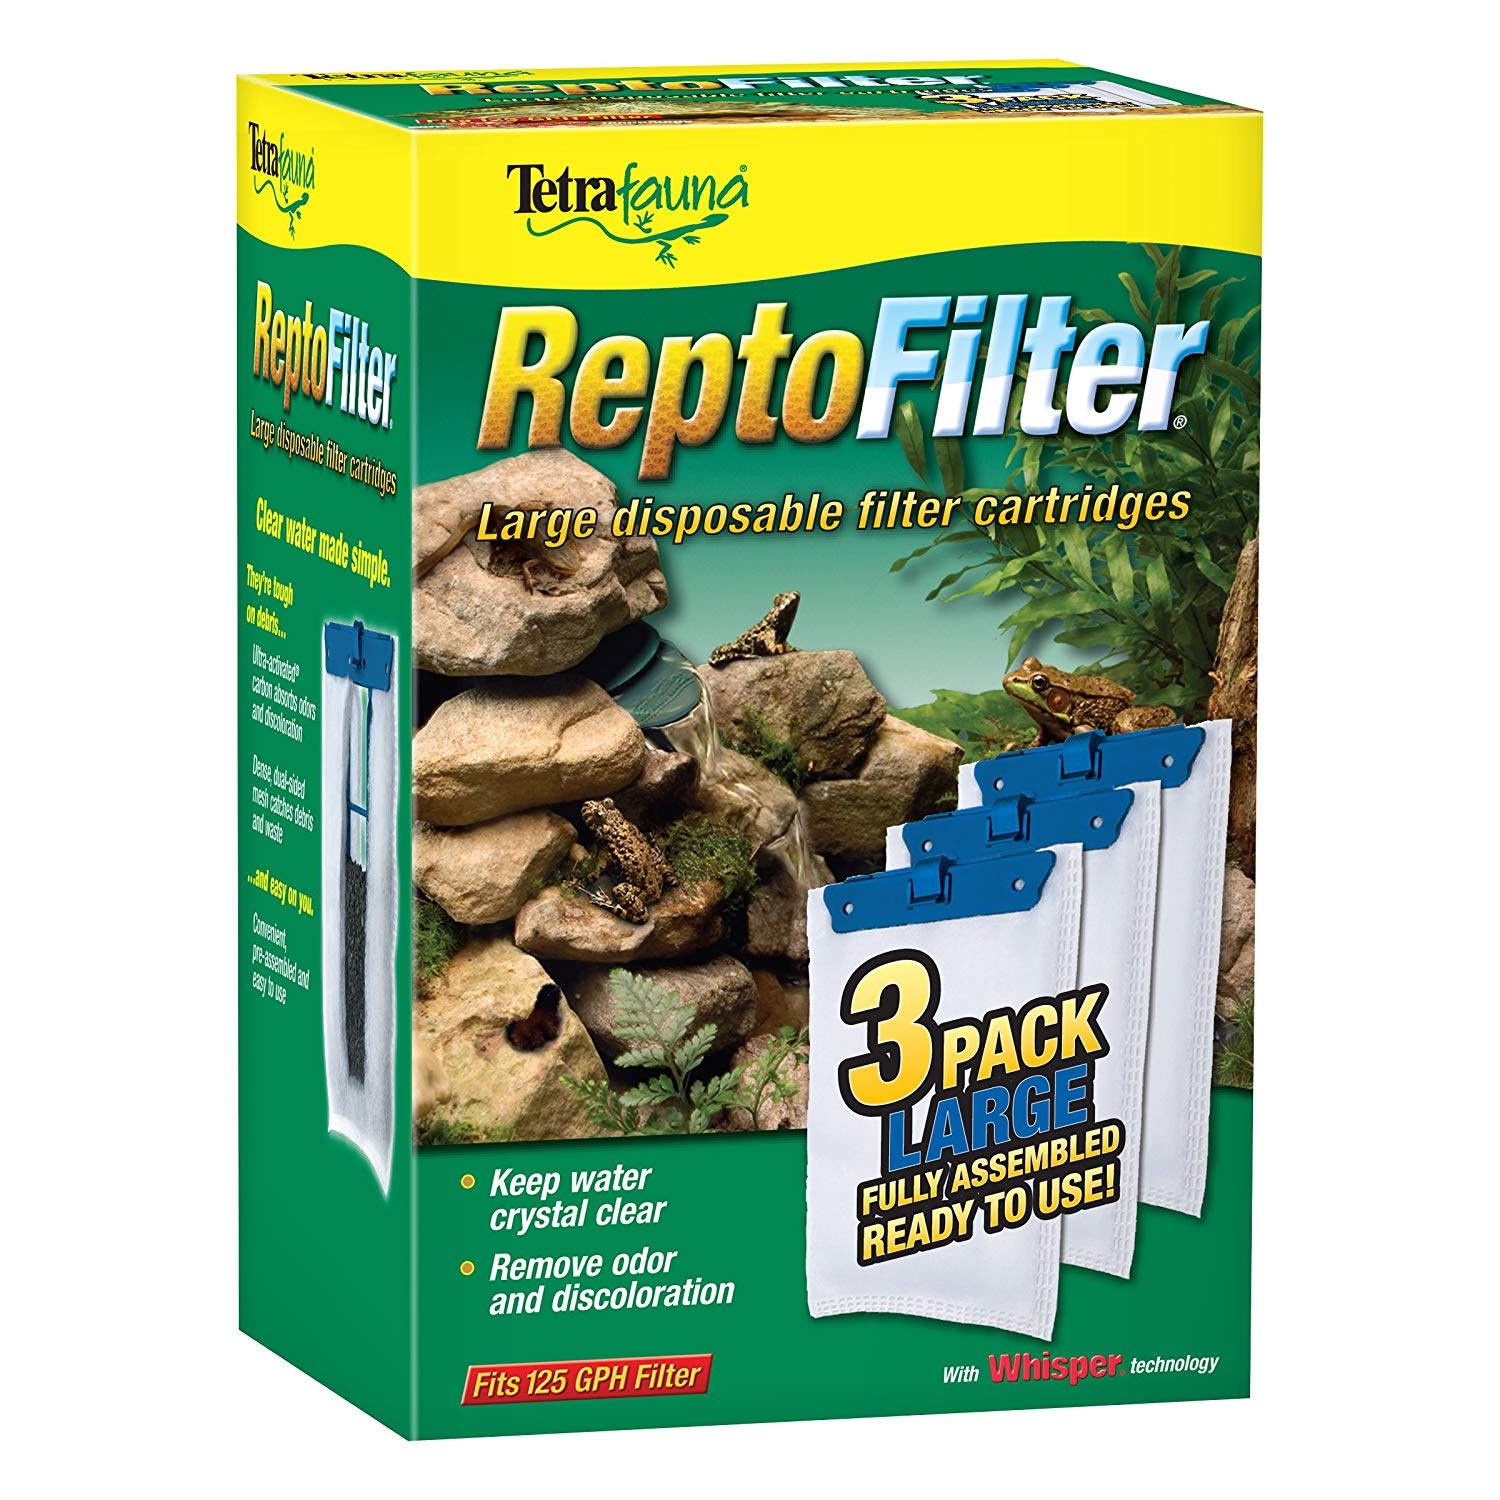 TetraFauna® ReptoFilter® Filter Cartridges 3 ct (large)